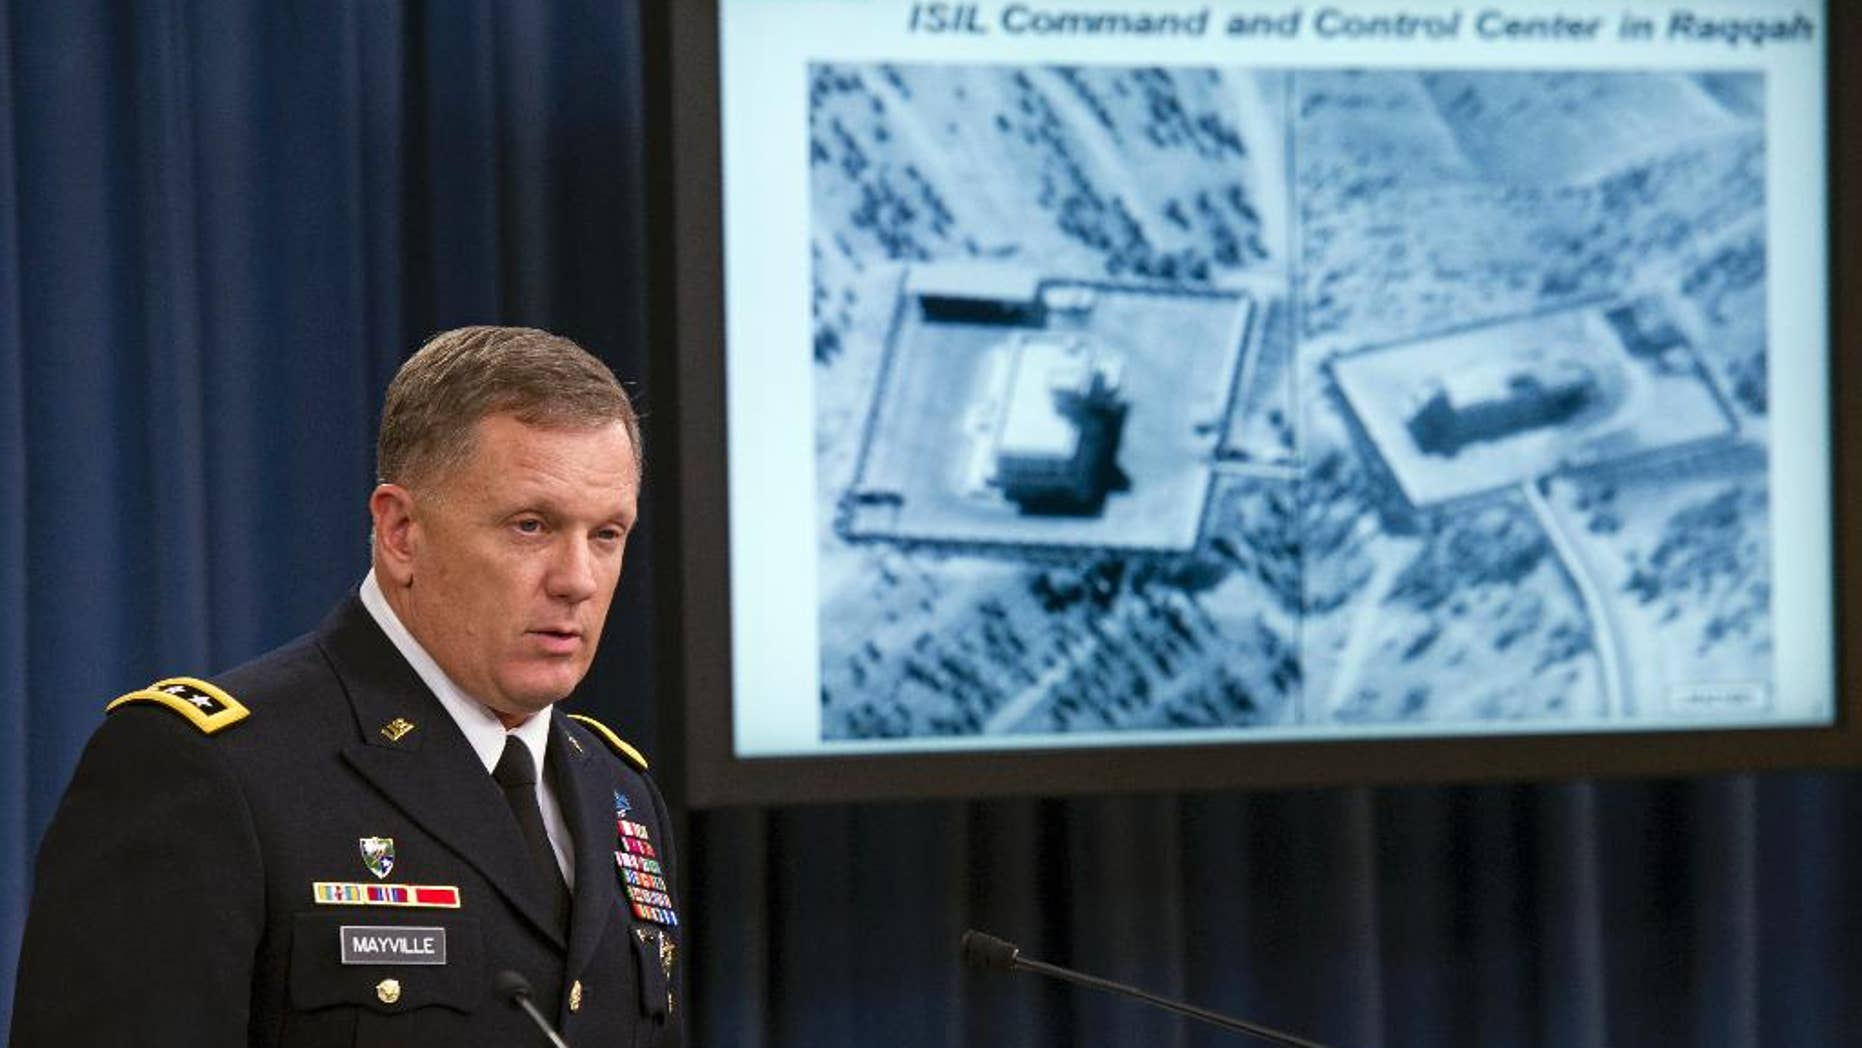 FILE - In this Sept. 23, 2014, file photo, Army Lt. Gen. William Mayville, Jr., Director of Operations J-3, speaks about the operations in Syria, during a news conference at the Pentagon. The U.S. military has hit as many as 17 separate targets connected to an al-Qaida cell in Syria known as the Khorasan Group, U.S. officials say. It's part of an ongoing and little-discussed air campaign aimed at disrupting the group's capacity to plot attacks against Western aviation.  (AP Photo/Cliff Owen, File)